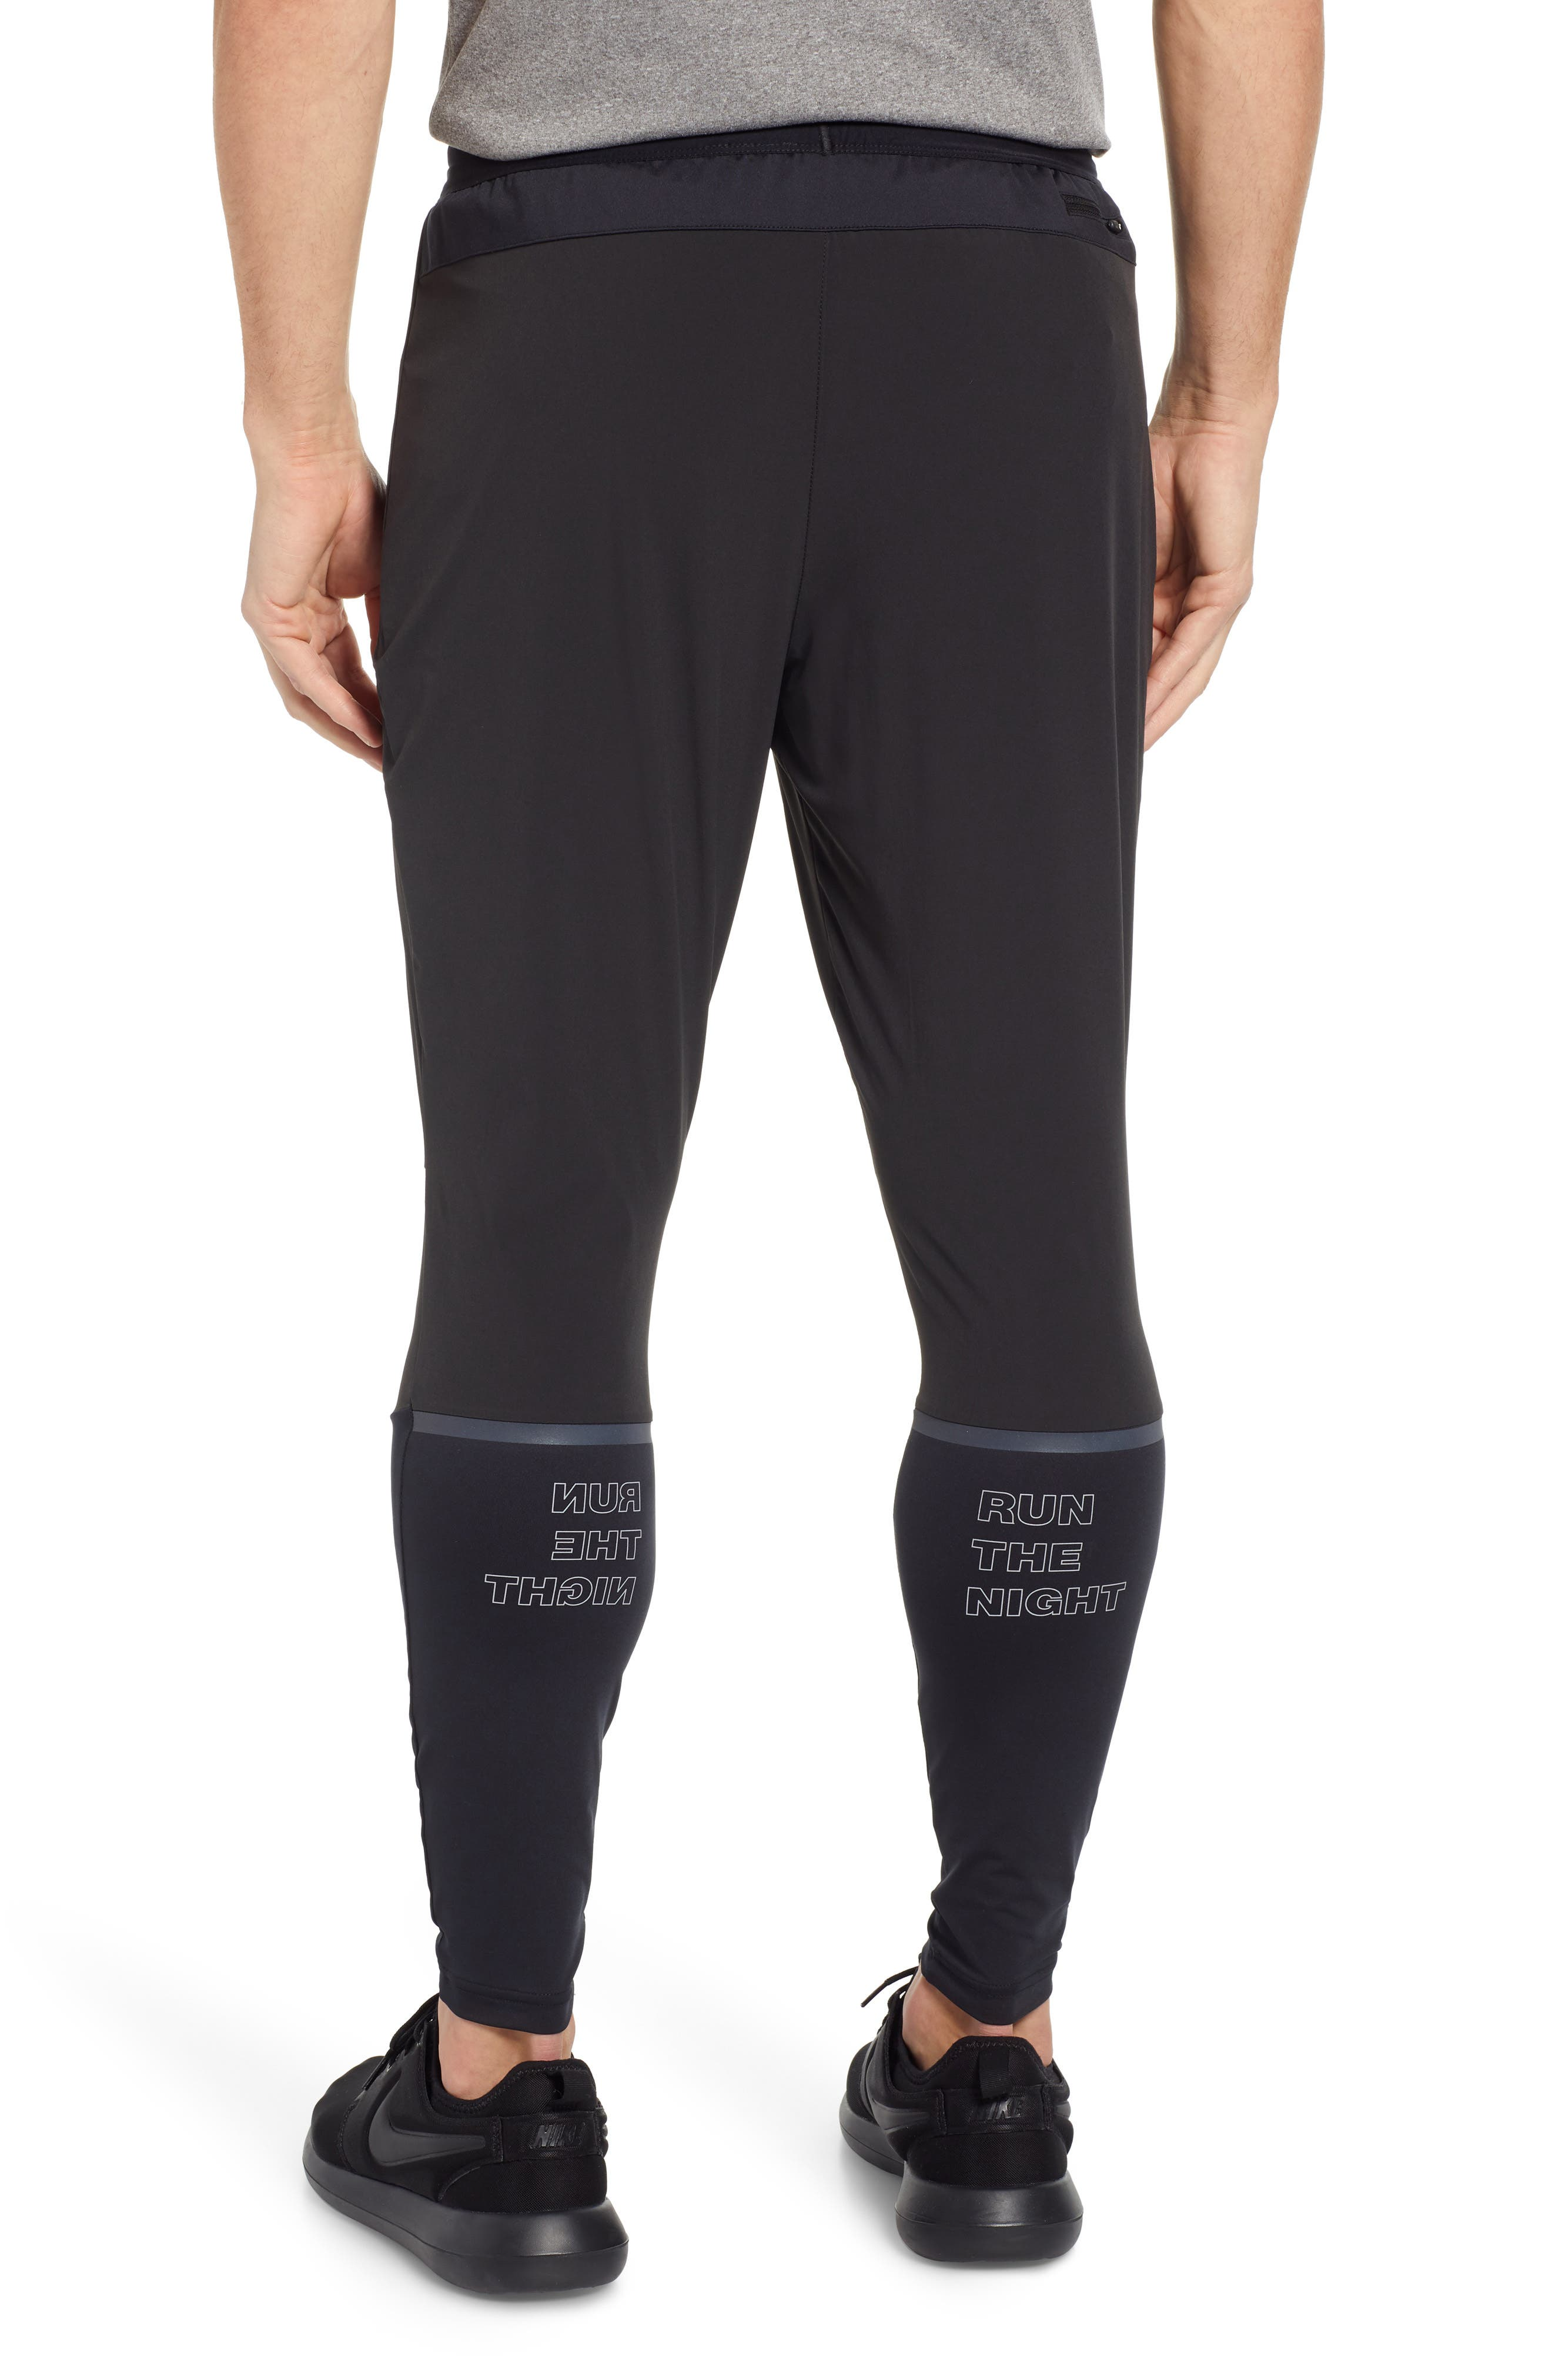 7ee9a6cc0f8c Nike Track Pants   Workout Pants for Men